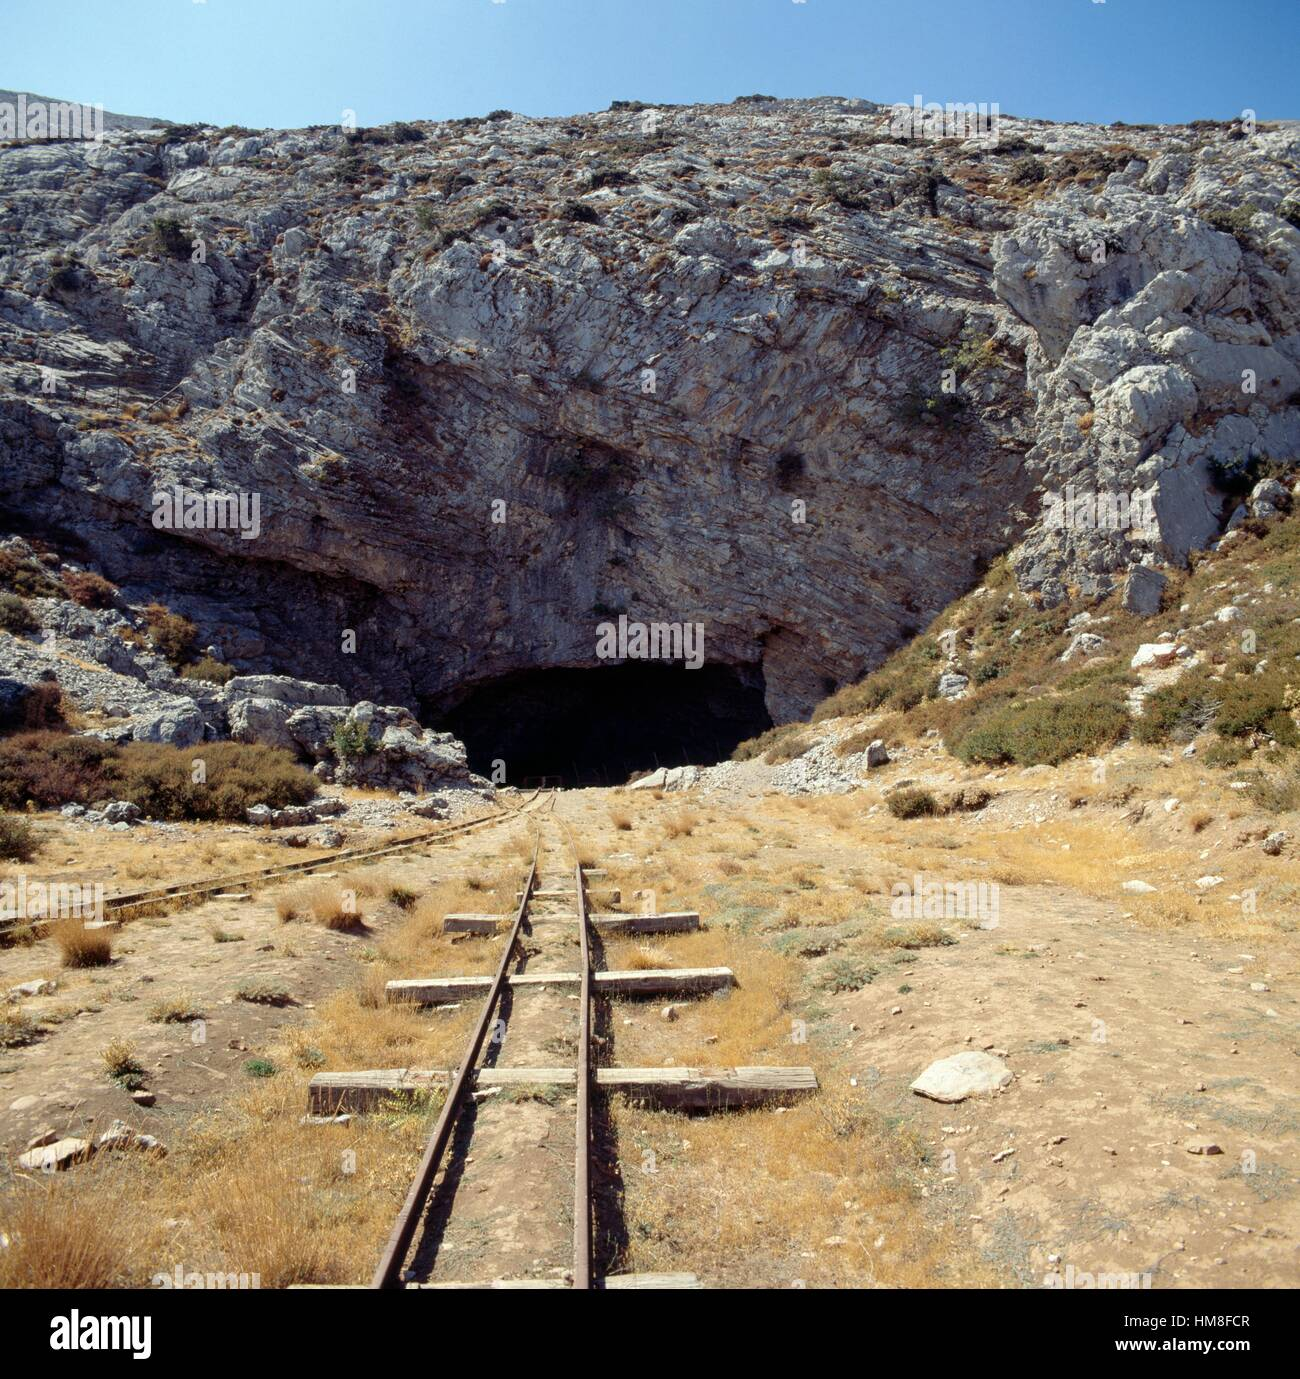 Ideon Cave or Ideon Andron, according to myth the birthplace of Zeus, slopes of Mount Psiloritis or Mount Ida, Crete, - Stock Image